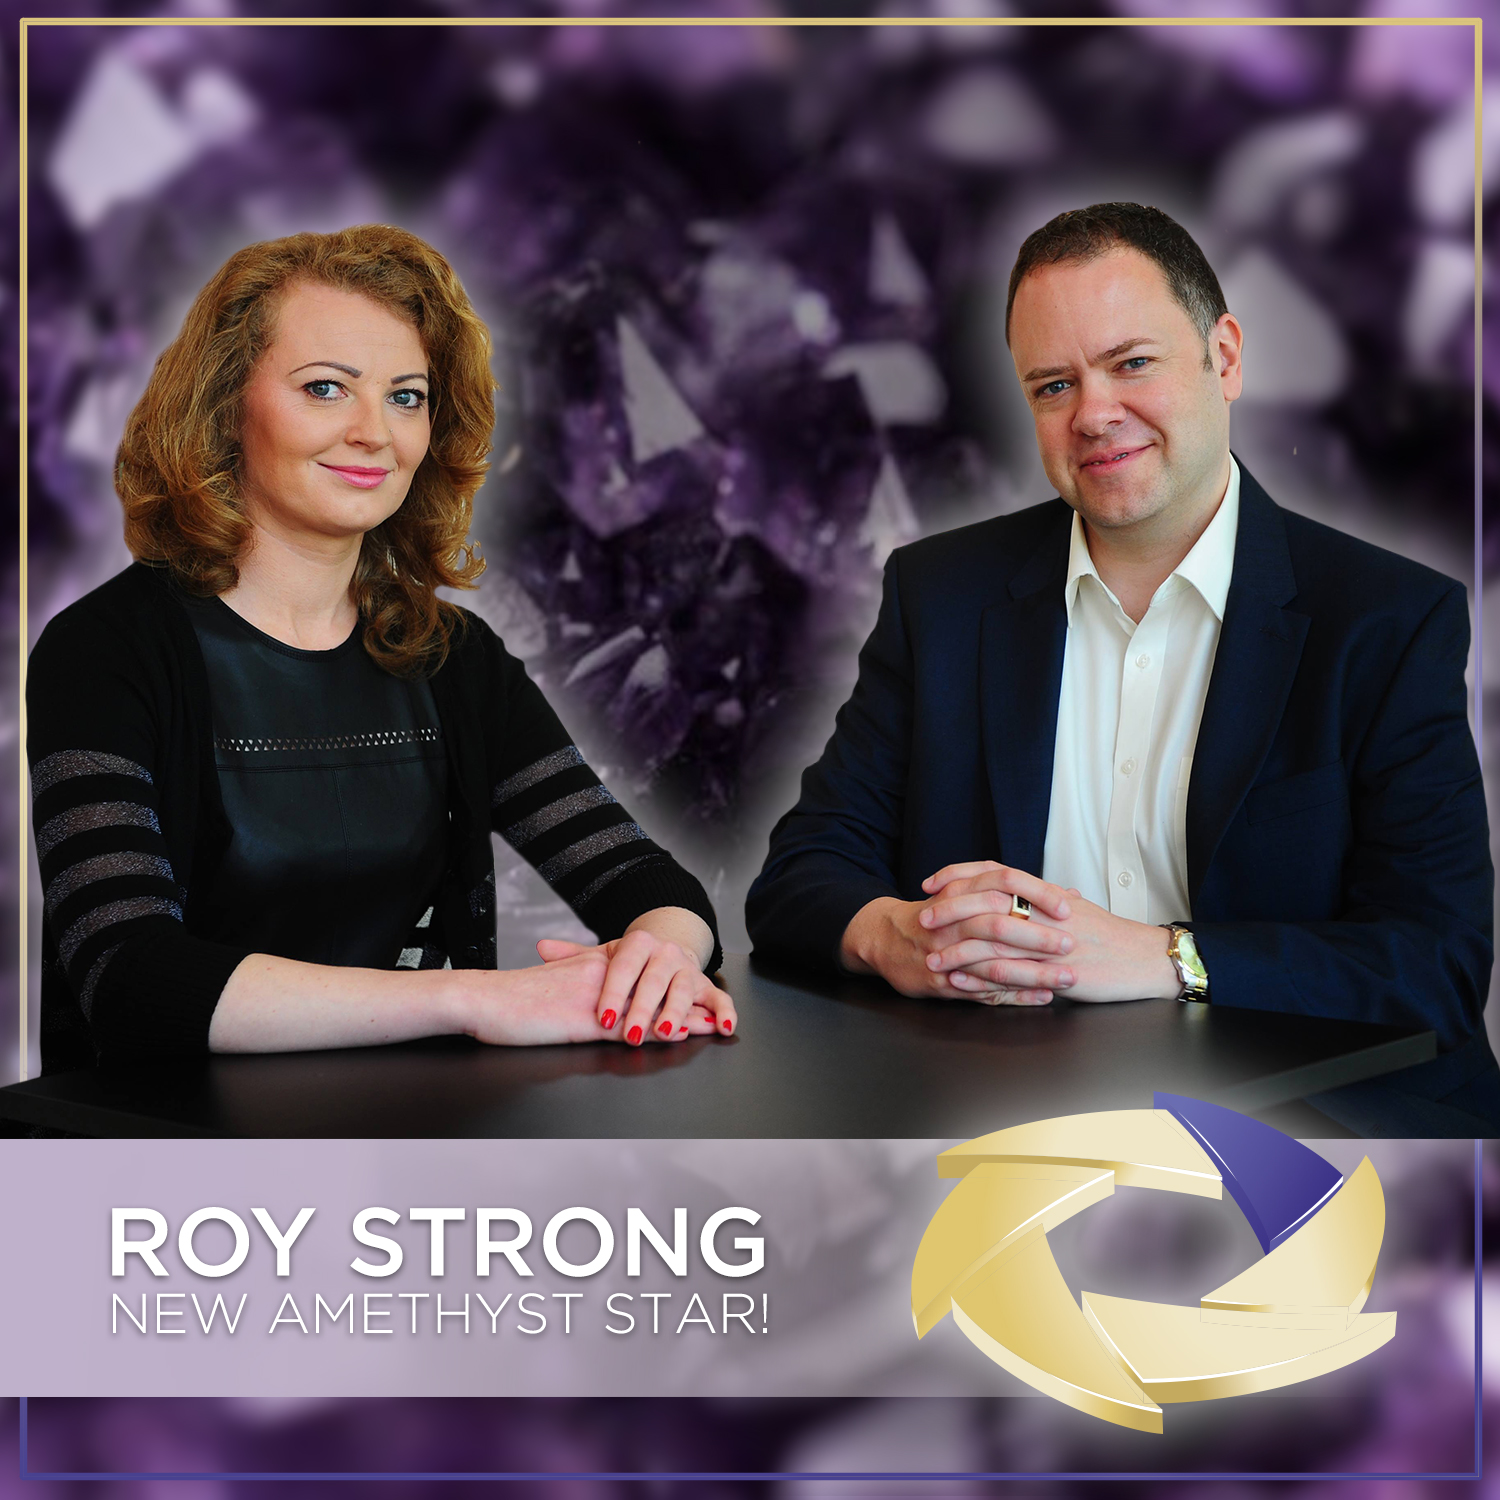 FIRST UK AMETHYST STAR - ROY STRONG!